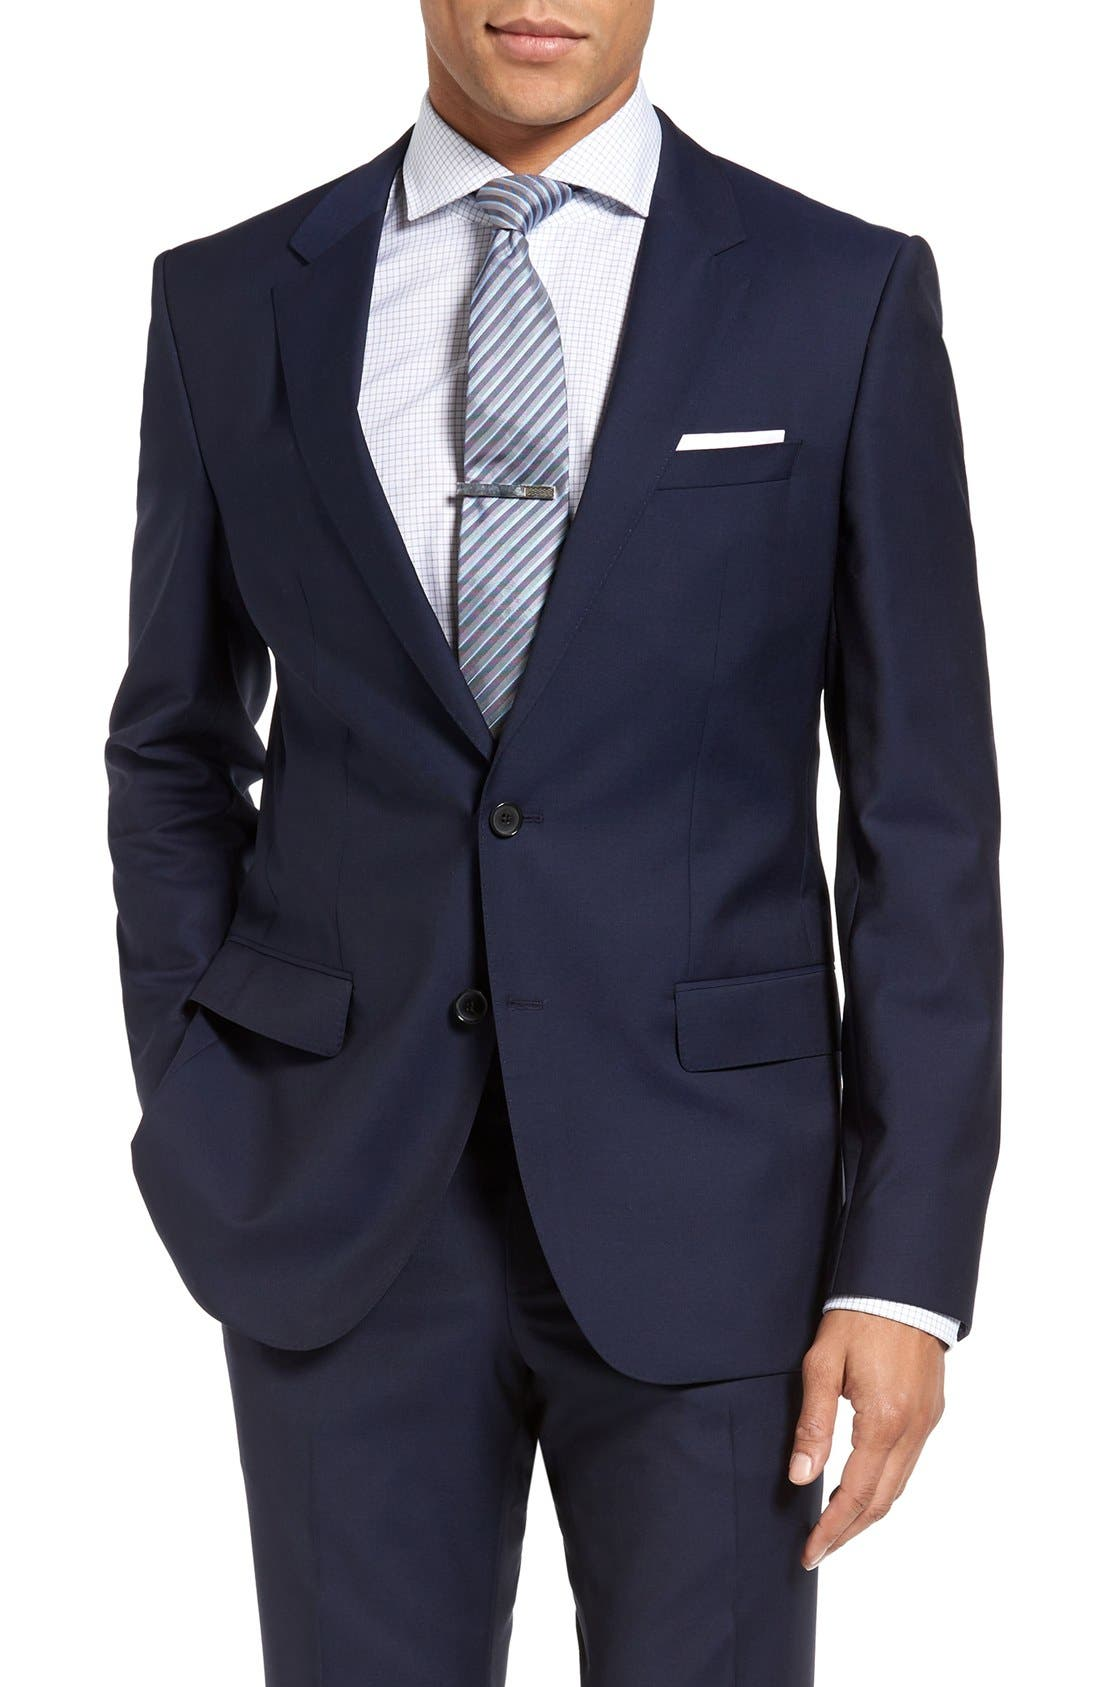 Huge/Genius Trim Fit Navy Wool Suit,                             Alternate thumbnail 5, color,                             Navy